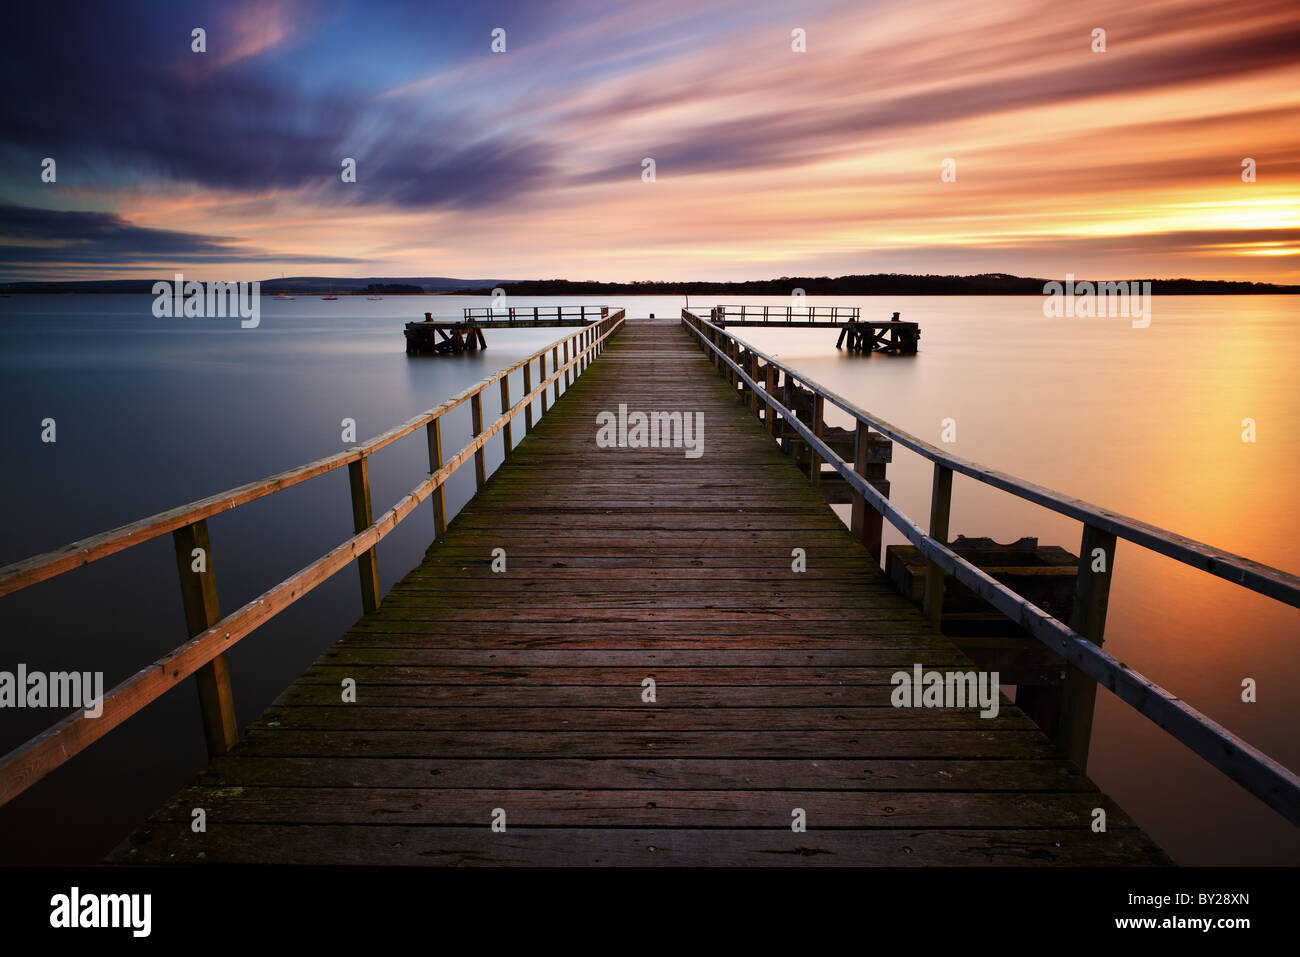 Lake Pier - Stock Image